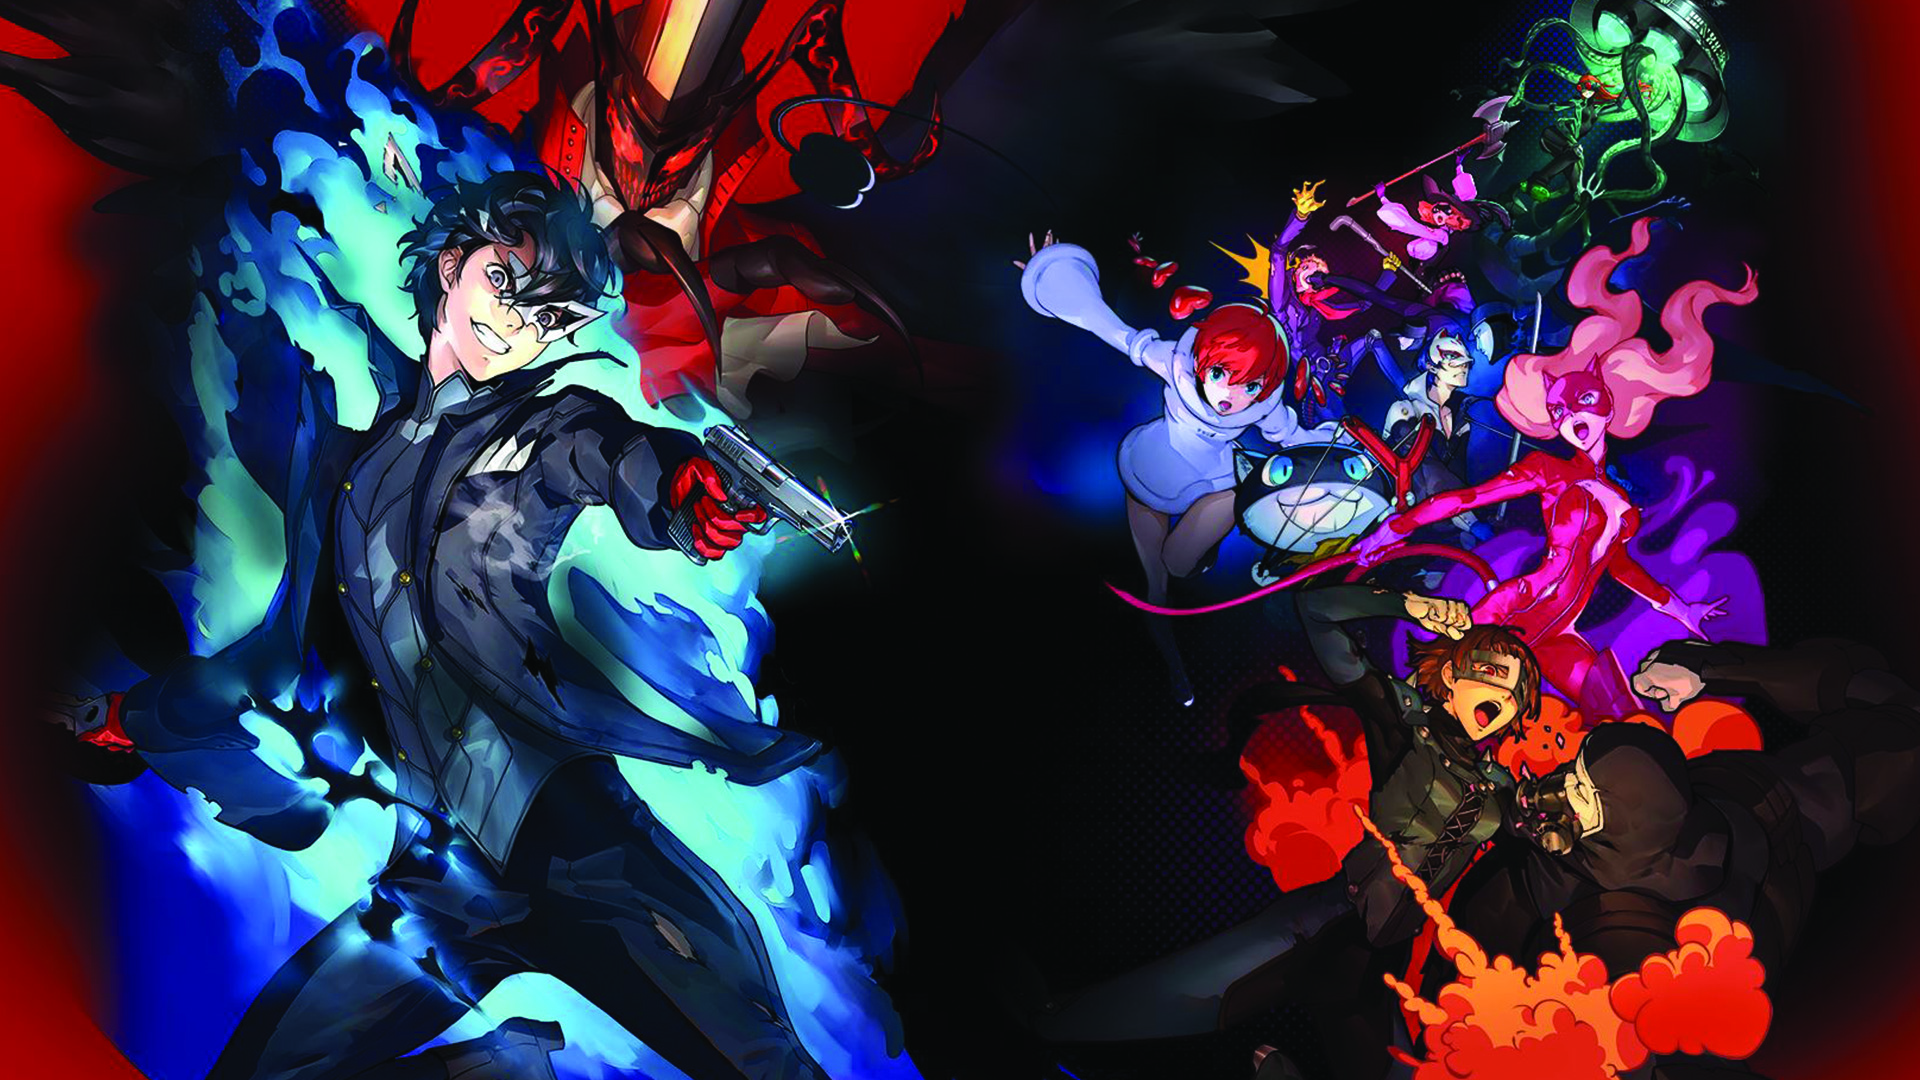 Persona 5 Scramble New Game Plus Requires Defeating The Reaper